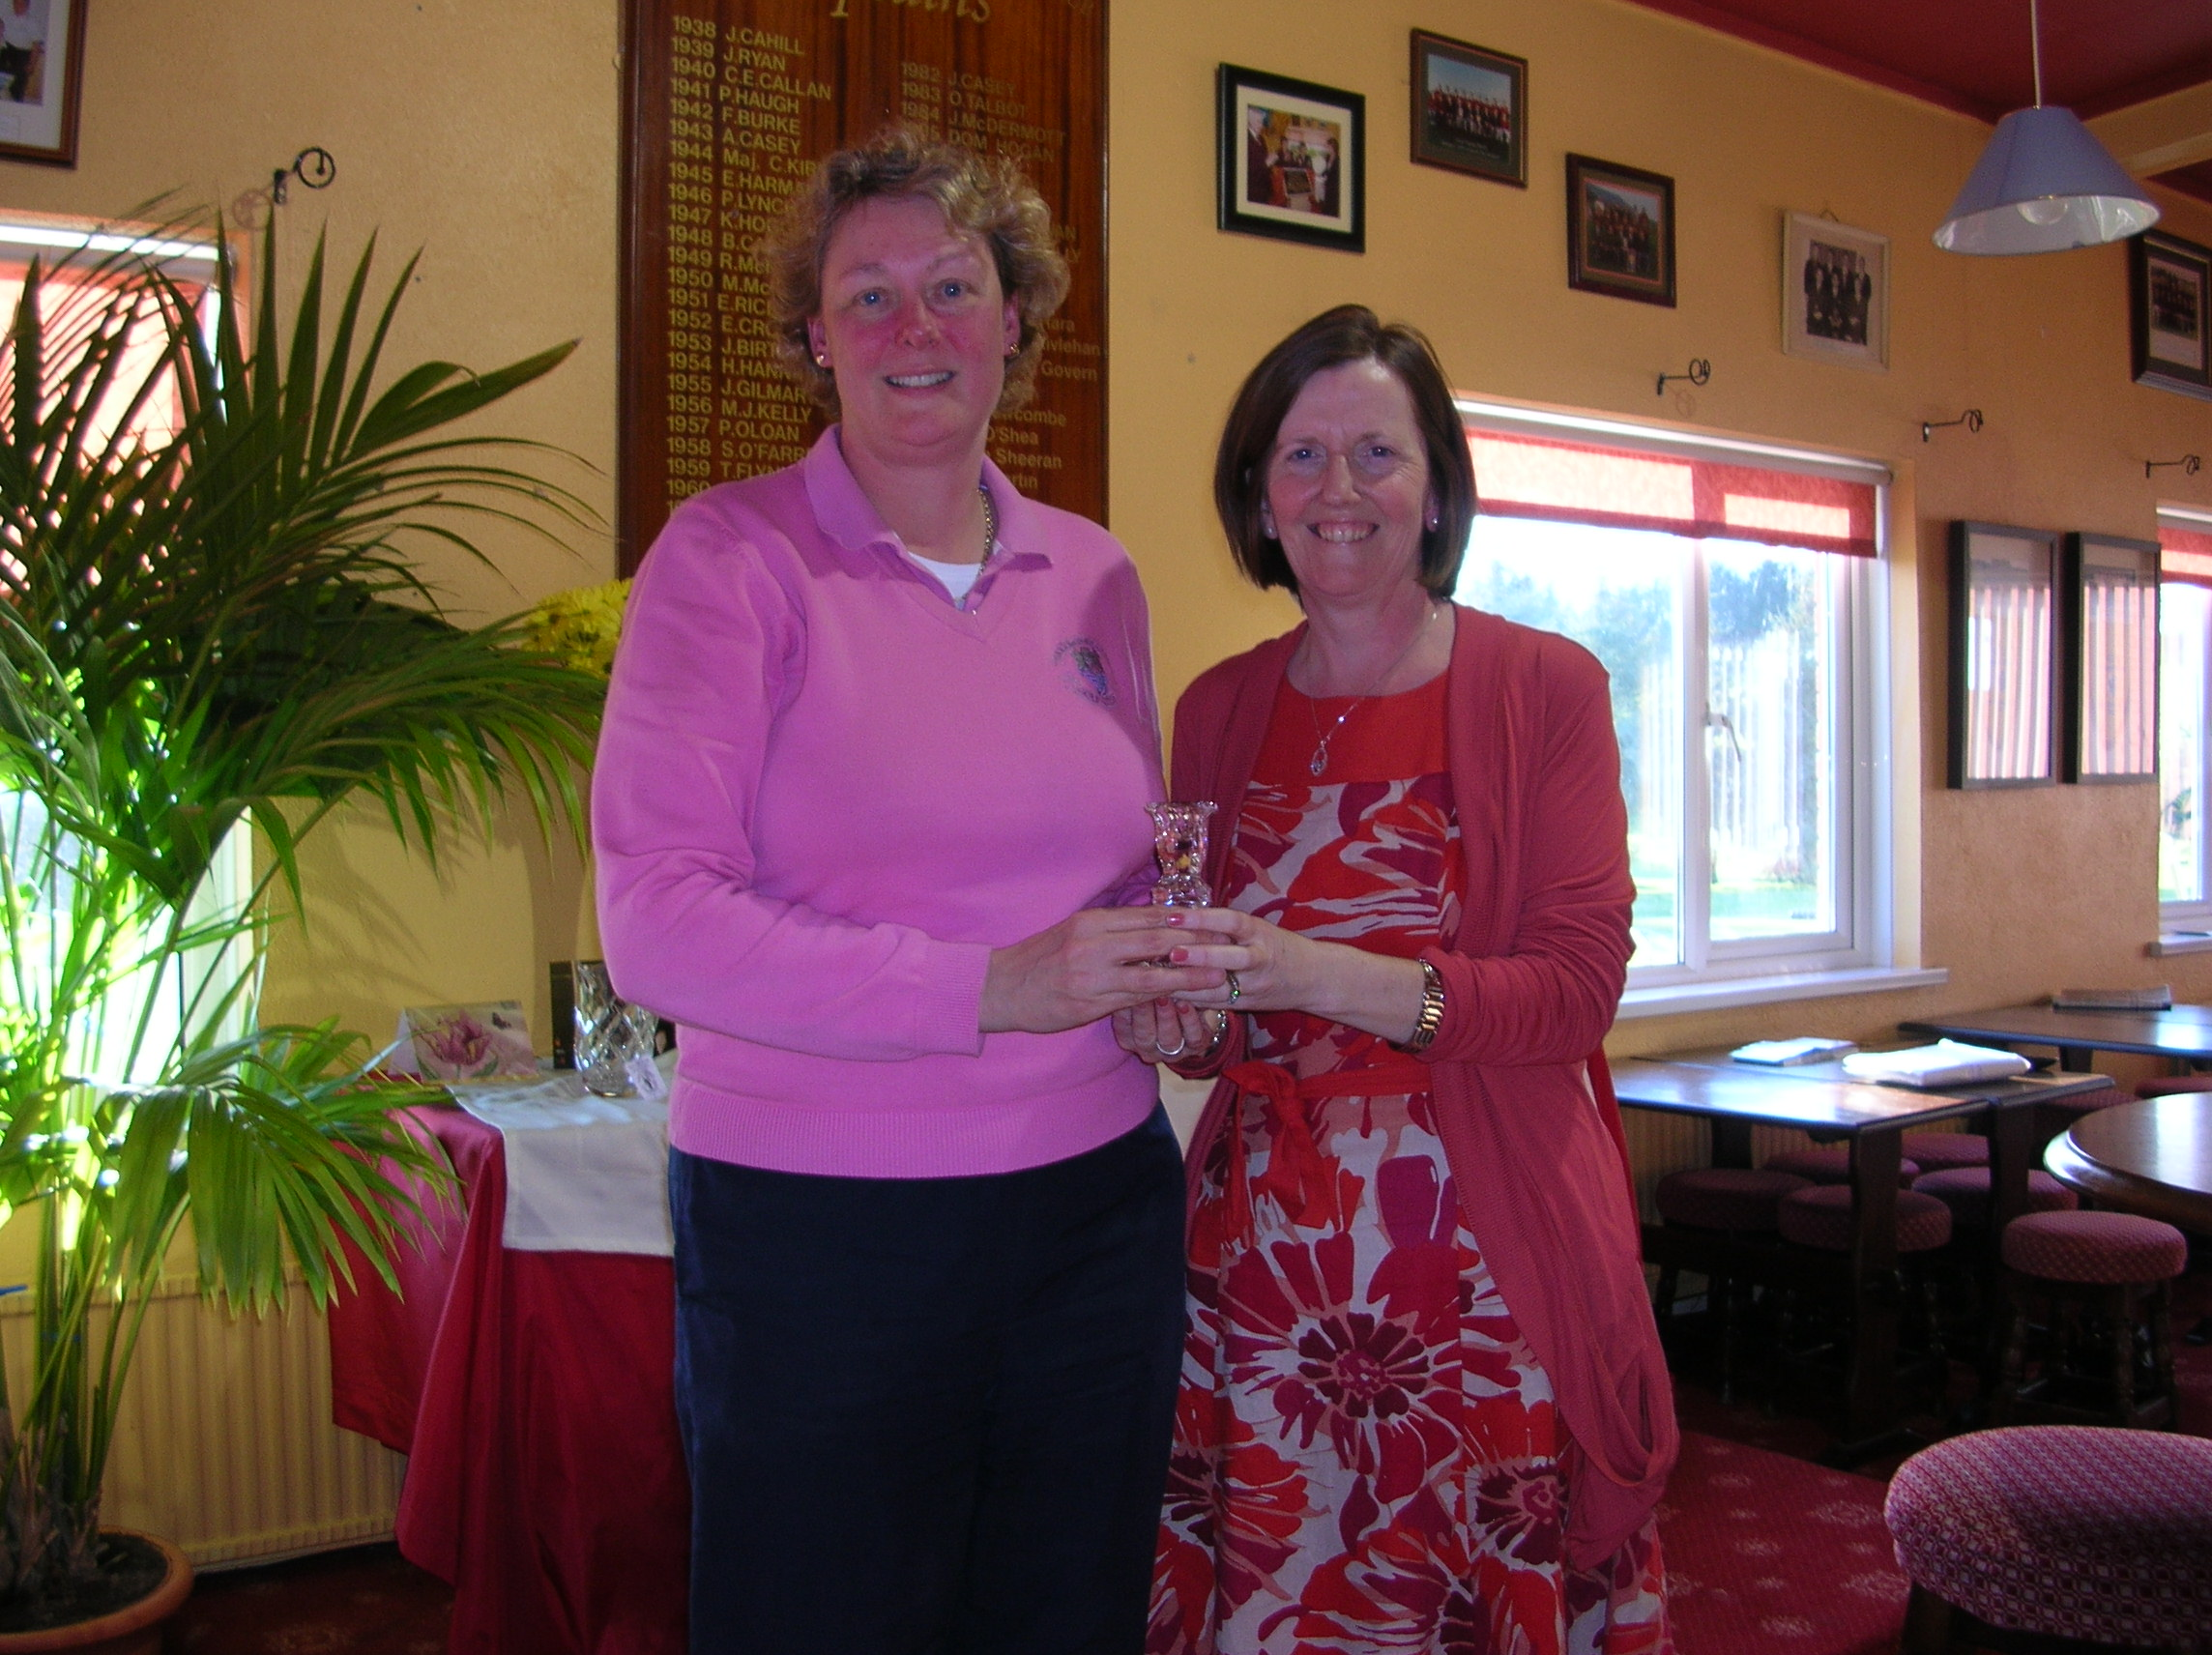 Ann Keenan winner of Front 9 in Maria Talbot Perpetual Trophy 2012 pictured receiving prize from Patrice Gallagher.